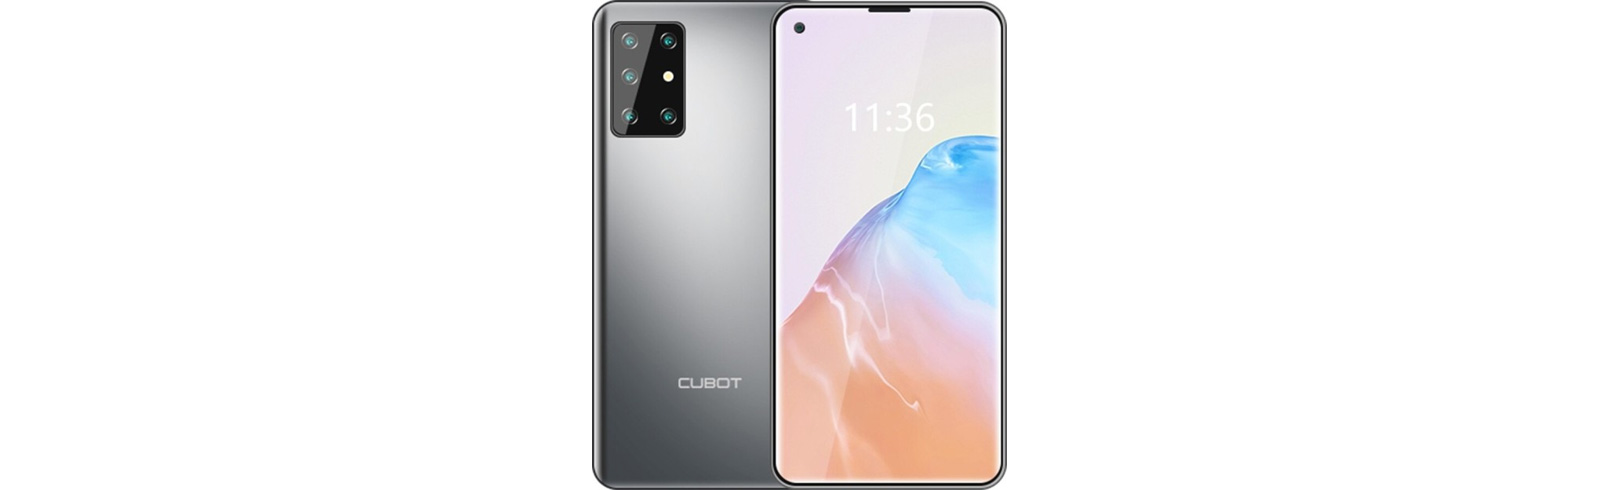 Cubot X30 with five rear cameras and a 32MP front-facing snapper appears on AliExpress